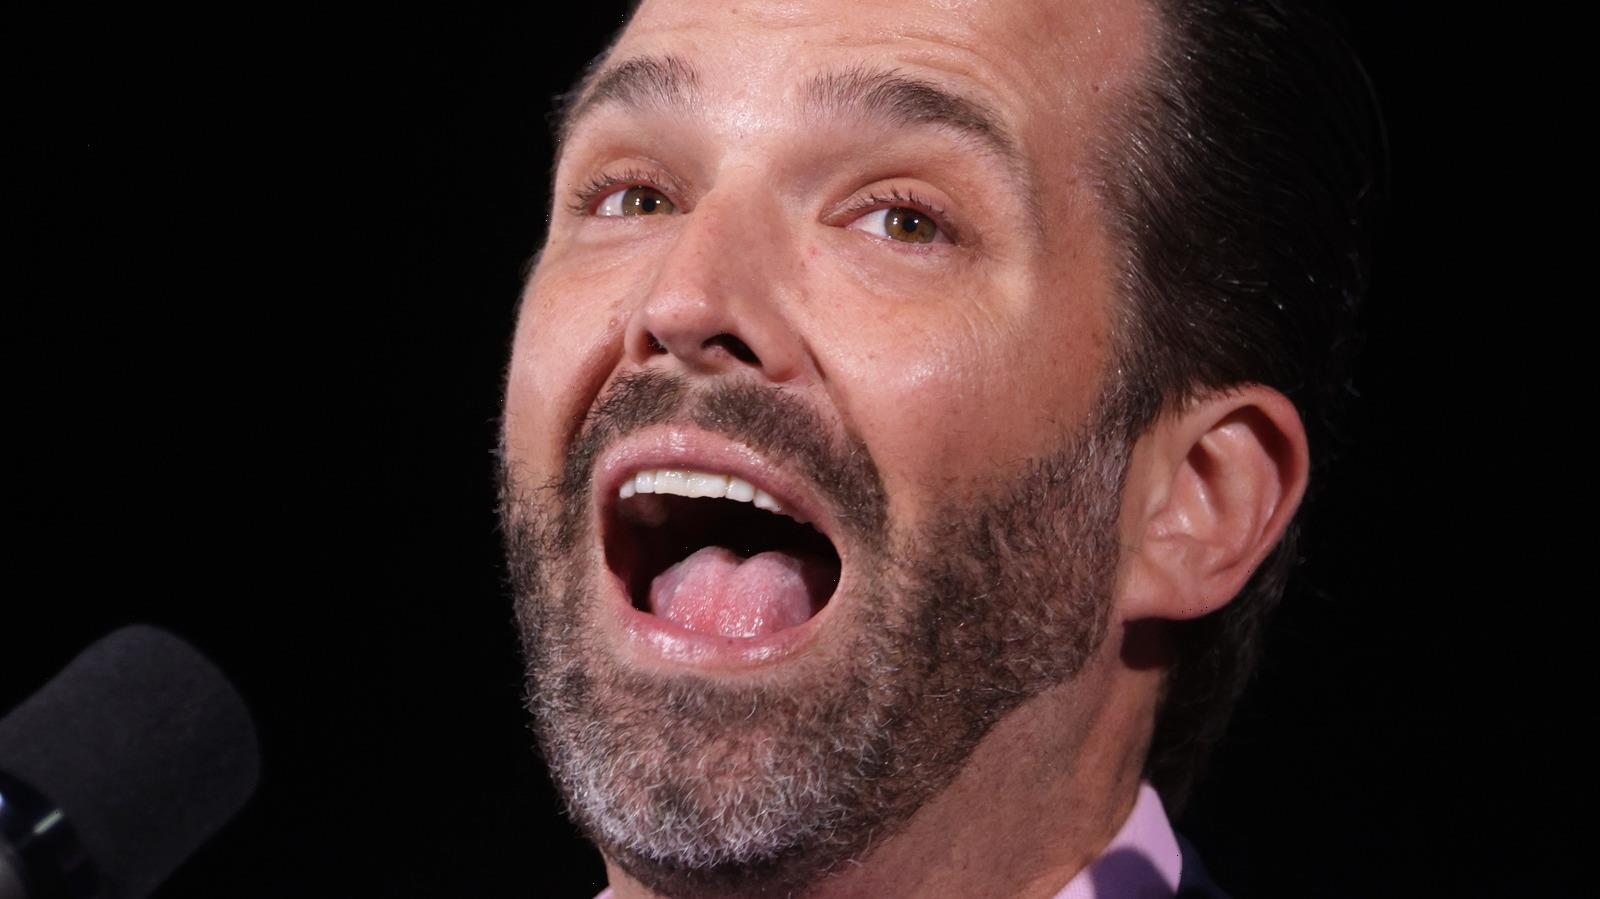 Donald Trump Jr.'s Tweets About New York's Vaccine Mandates Are Raising Eyebrows